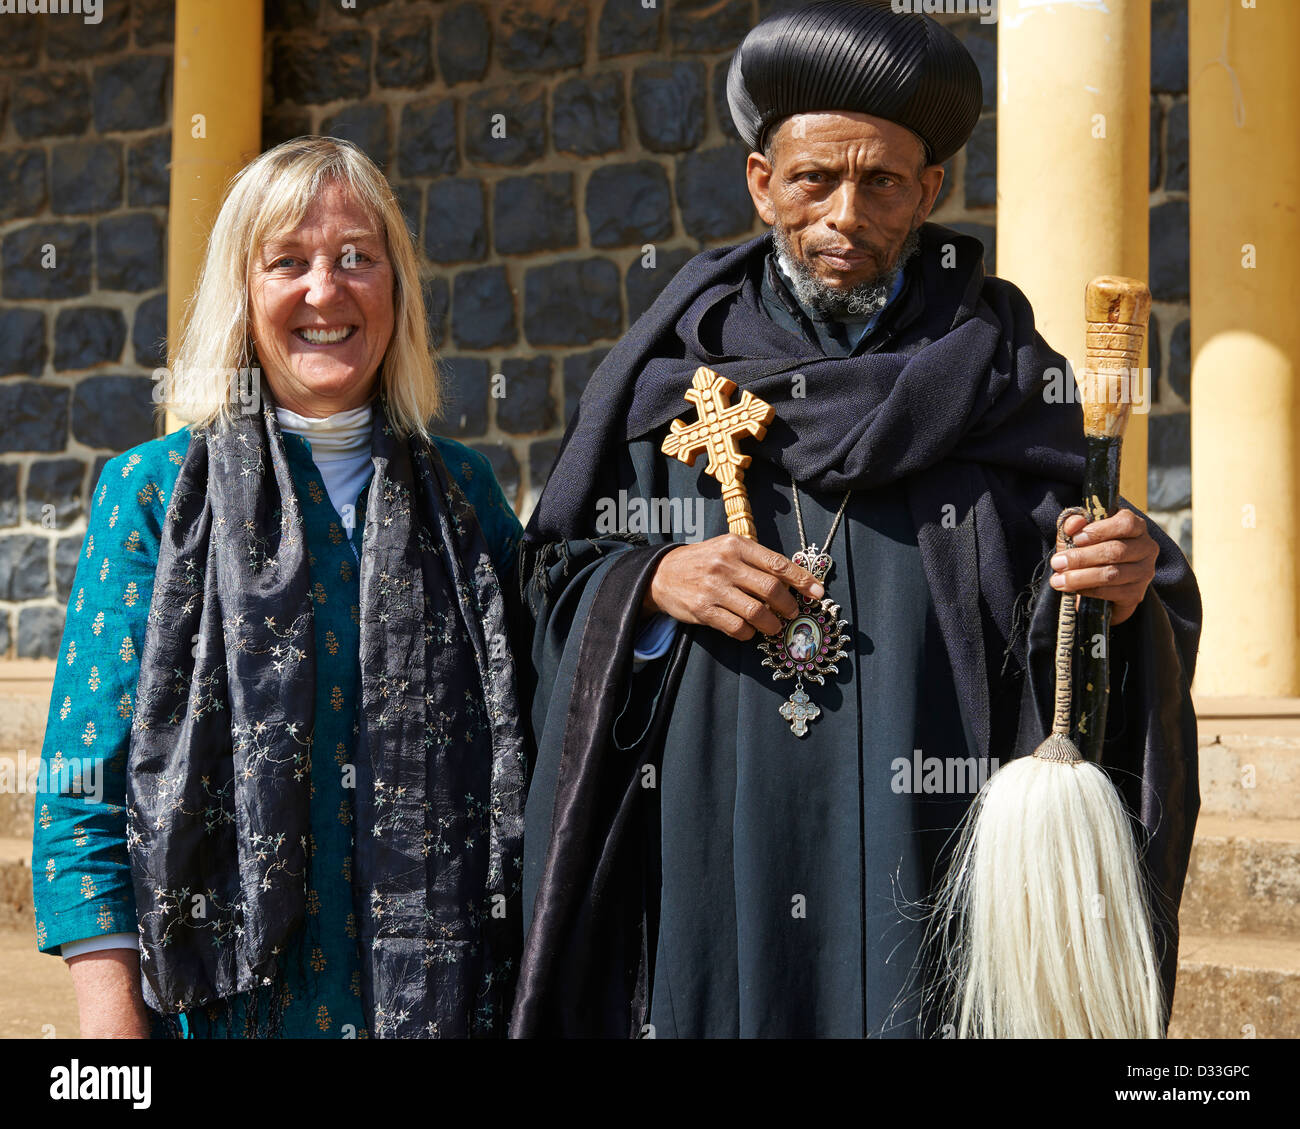 "Margaret ""Canopy Meg"" Lowman with a Christian Priest at a conference on the conservation of church forests in Ethiopia. Stock Photo"